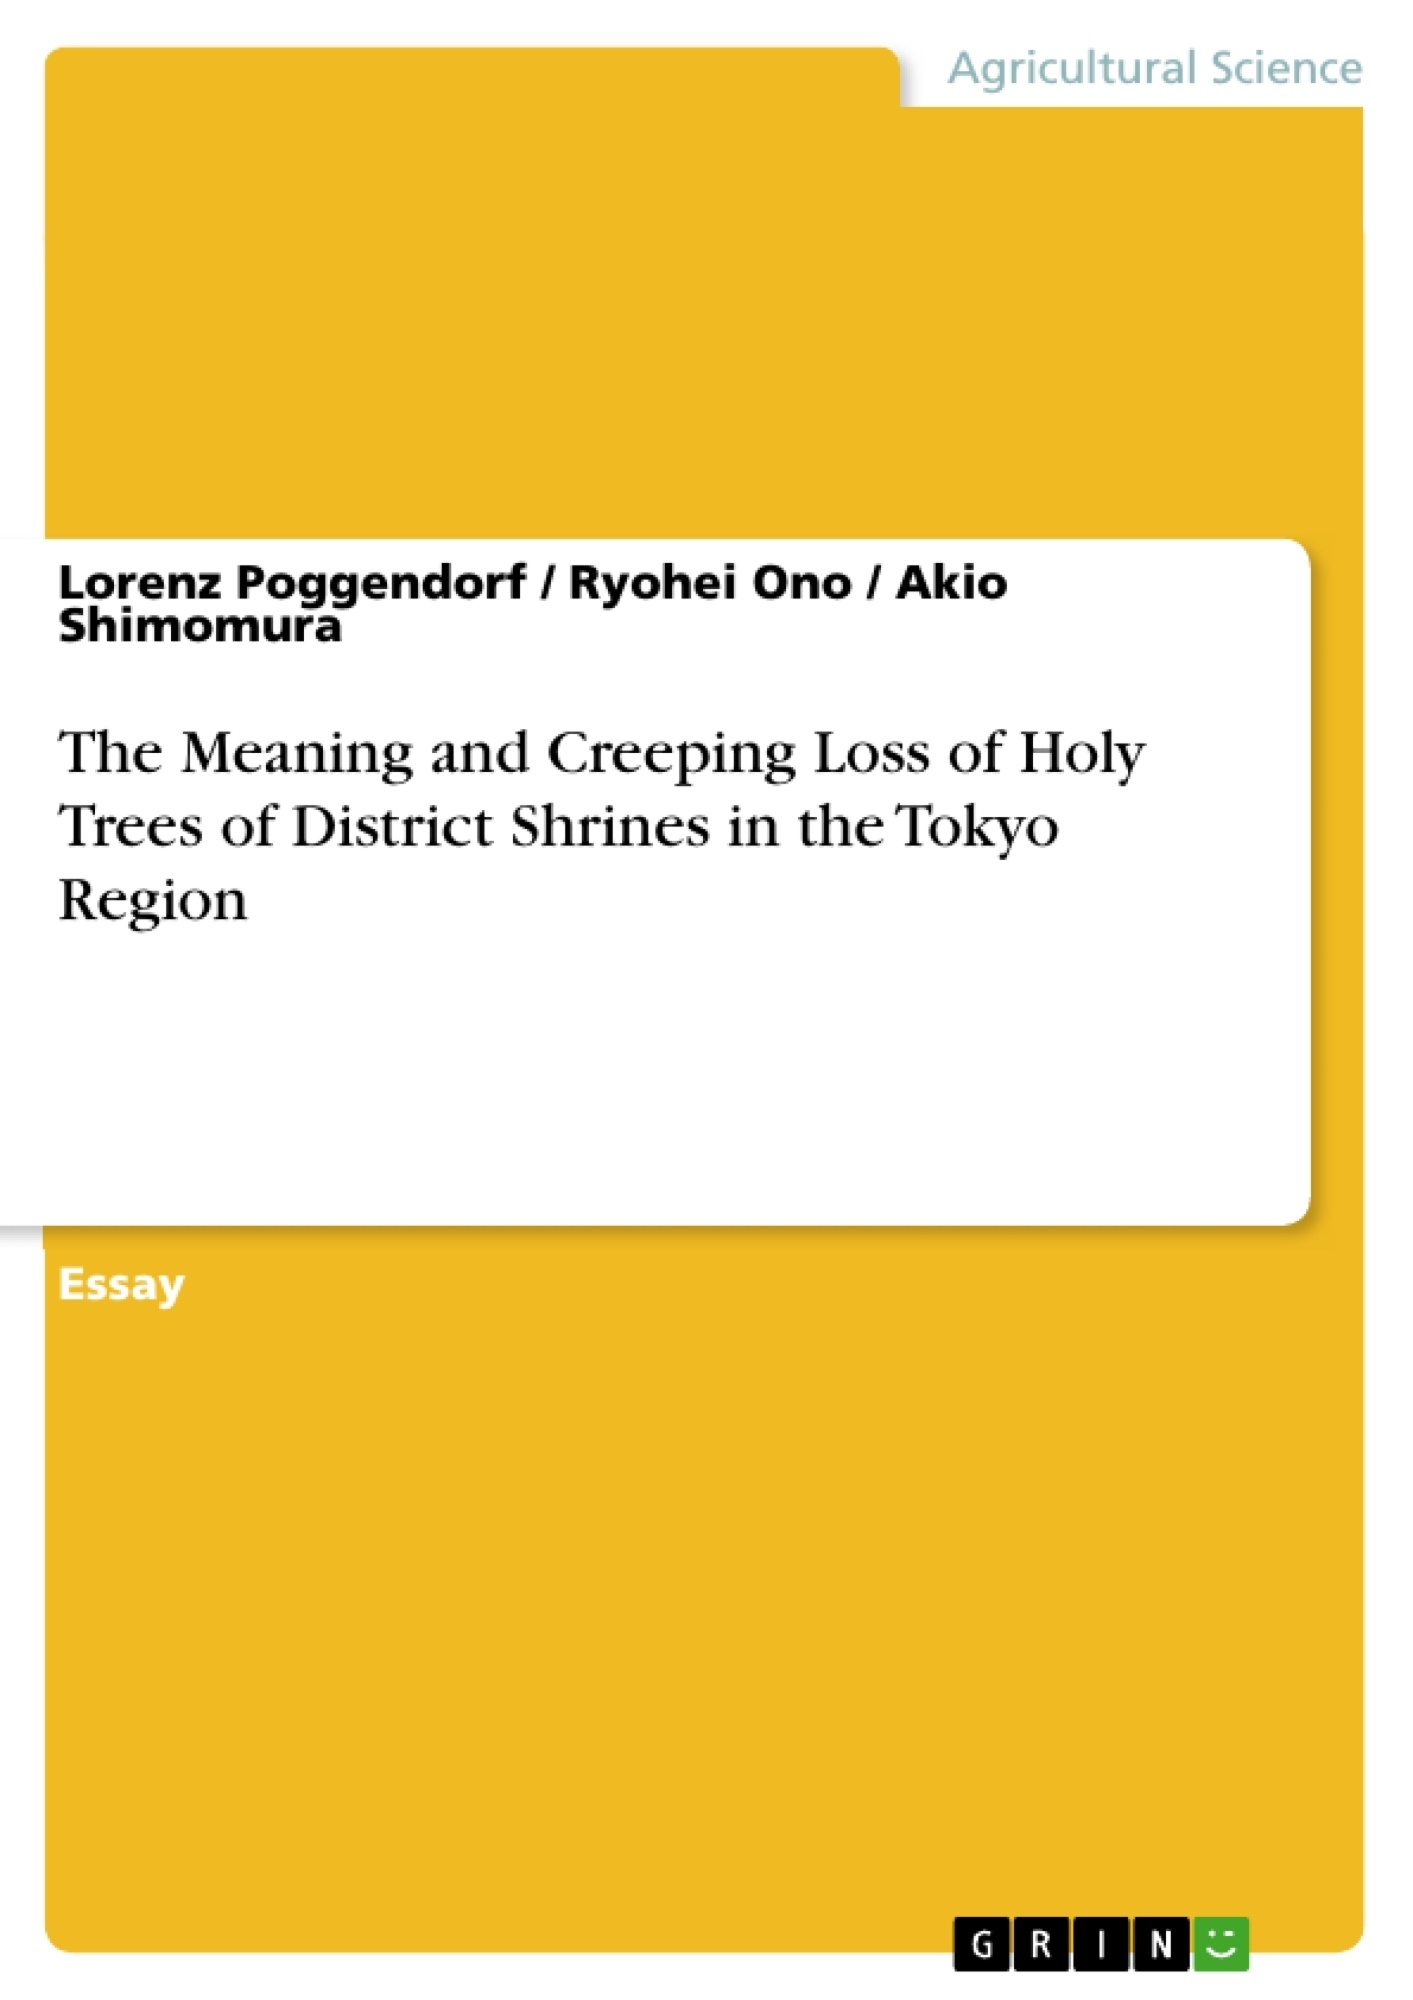 Title: The Meaning and Creeping Loss of Holy Trees of District Shrines in the Tokyo Region